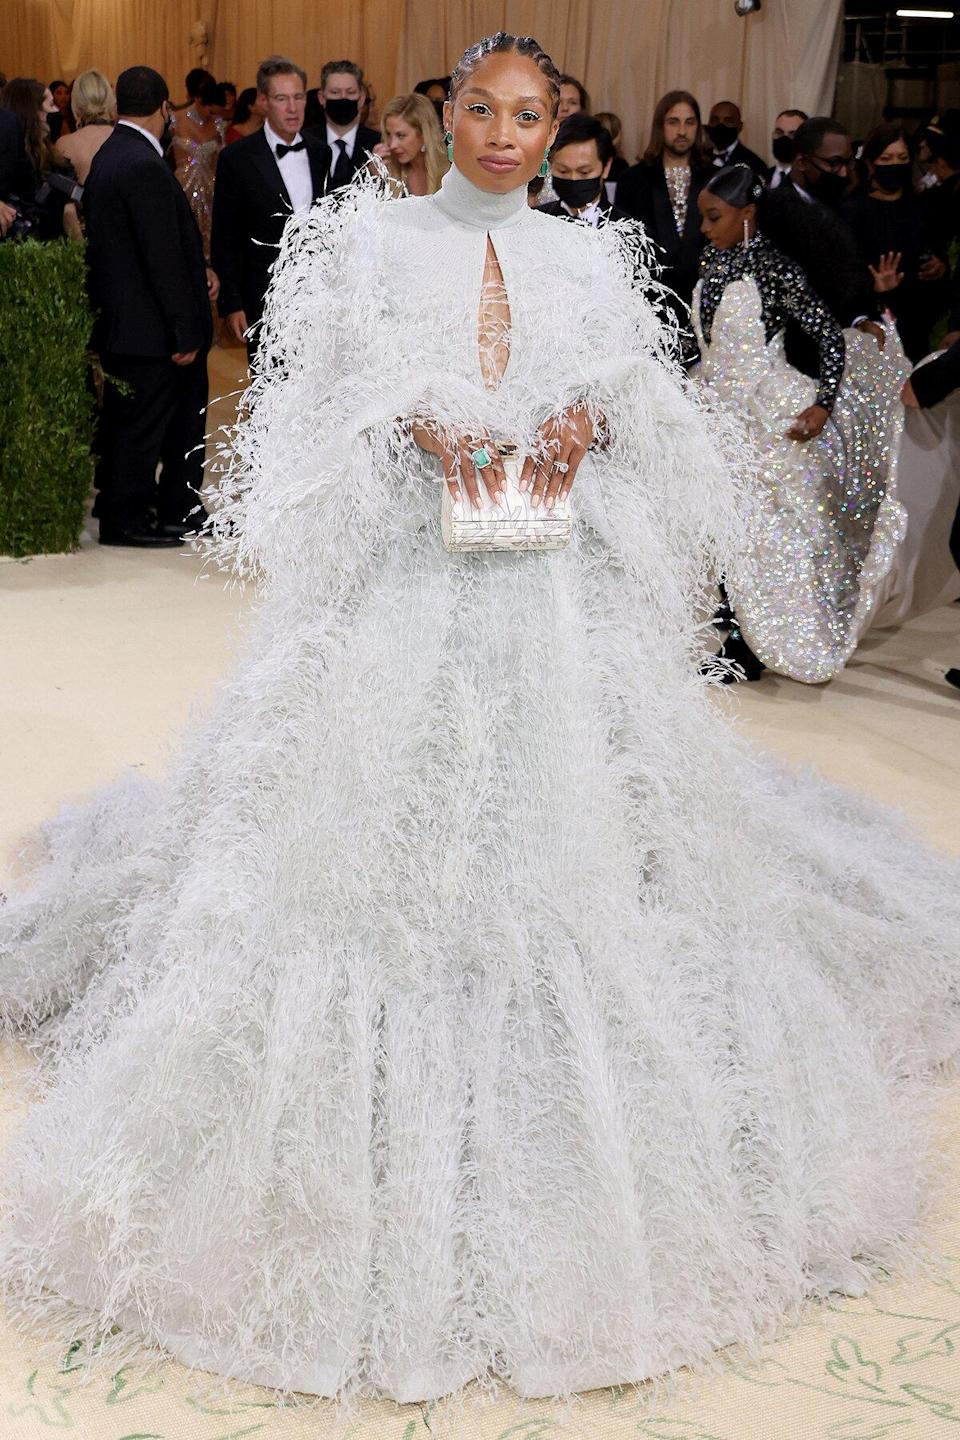 American track and field sprinter Allyson Felix attends The 2021 Met Gala Celebrating In America: A Lexicon Of Fashion at Metropolitan Museum of Art on September 13, 2021 in New York City.